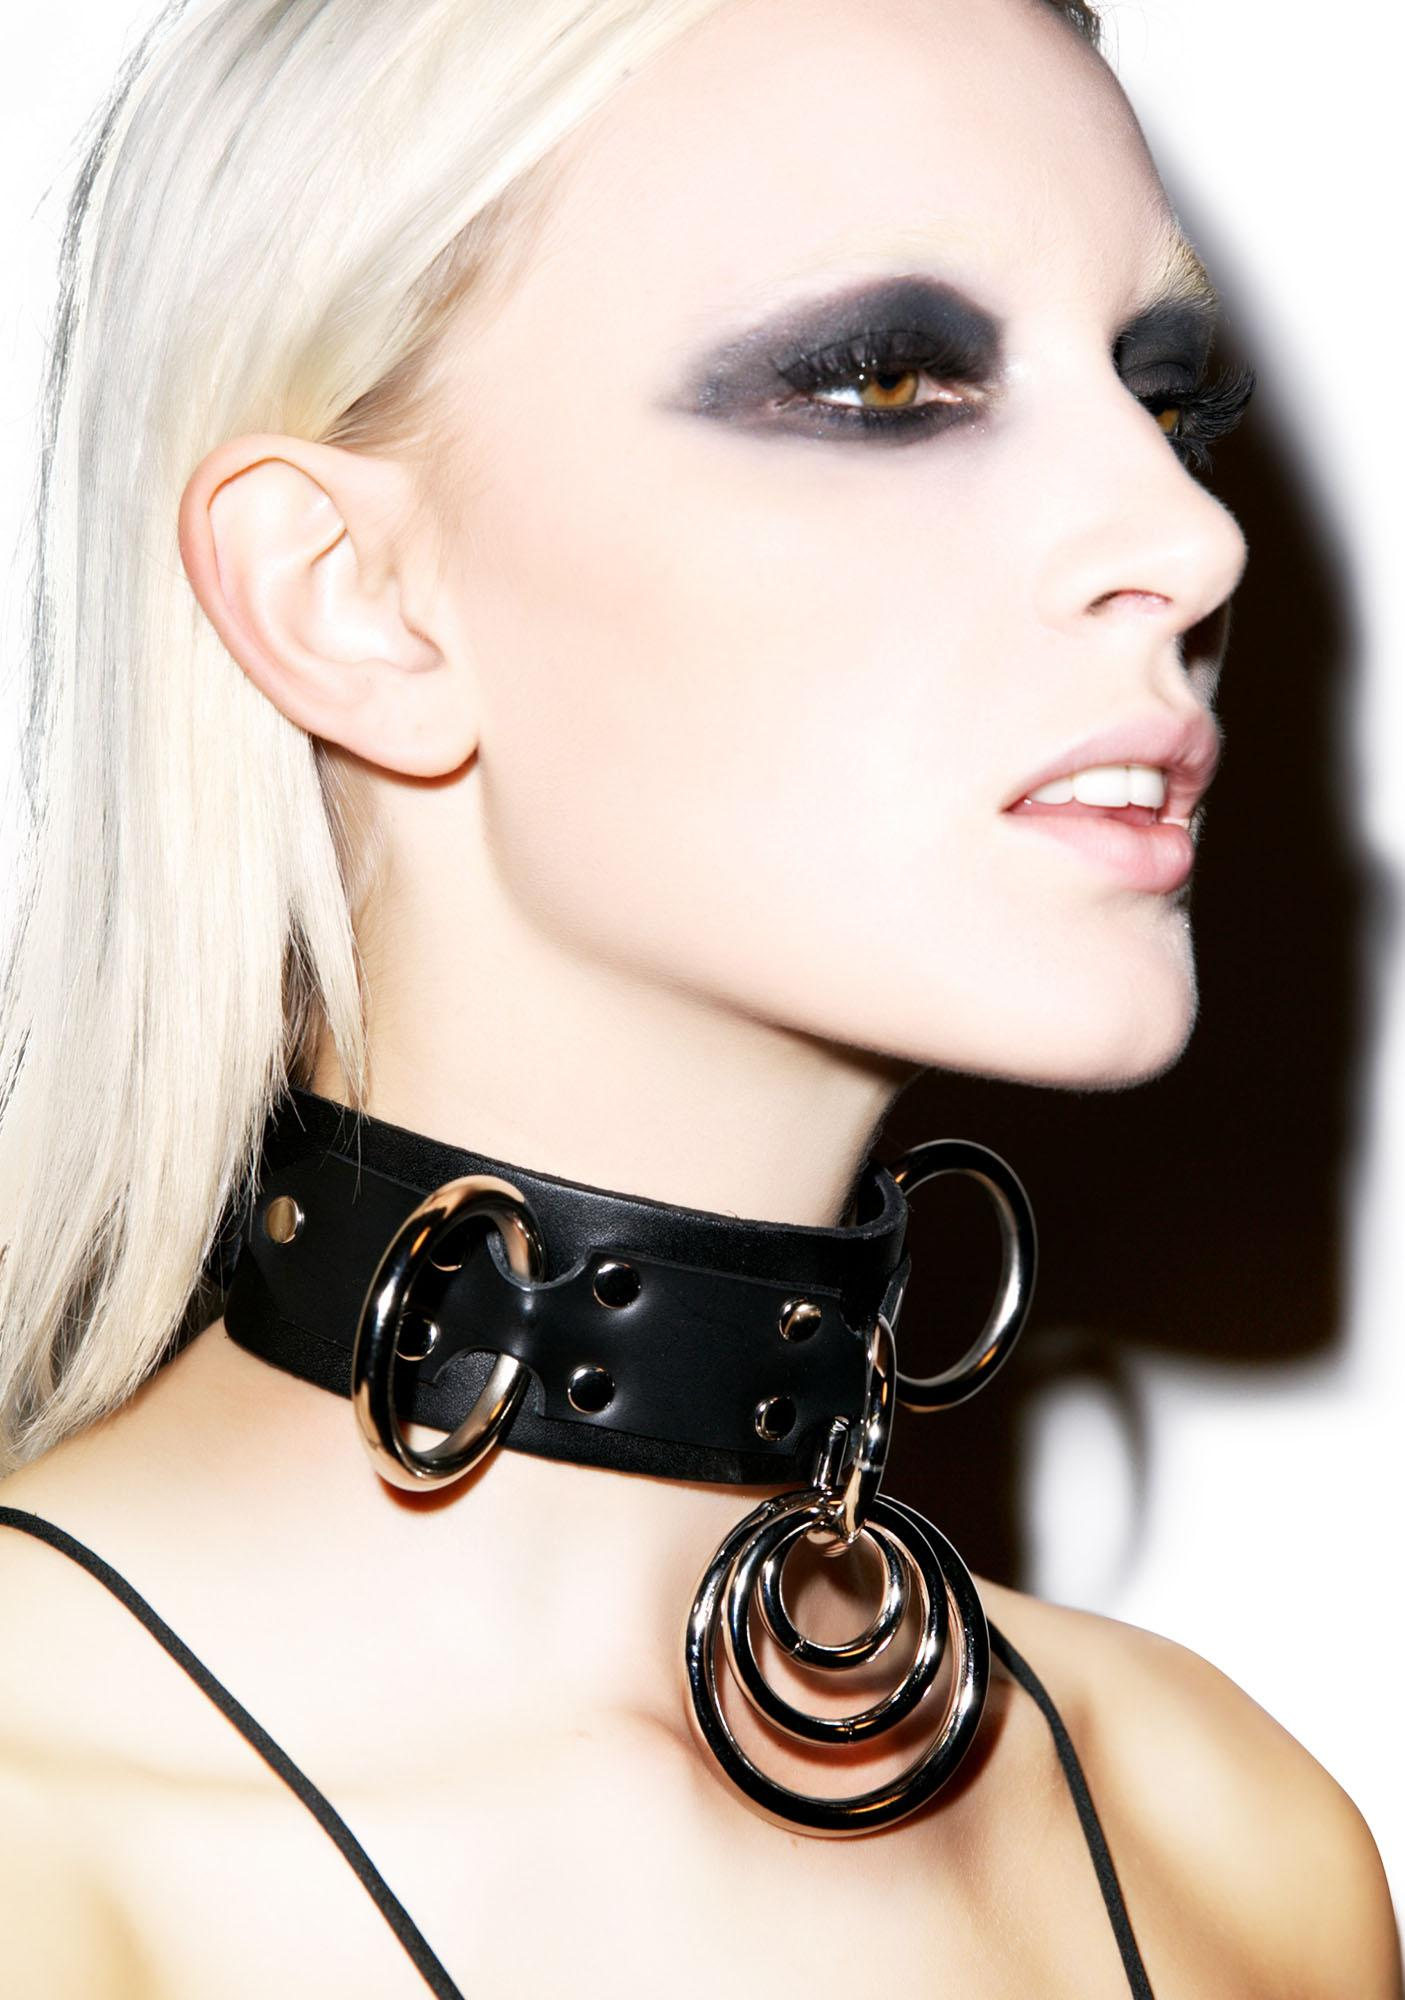 Club Exx Lord O' Da Rings Choker